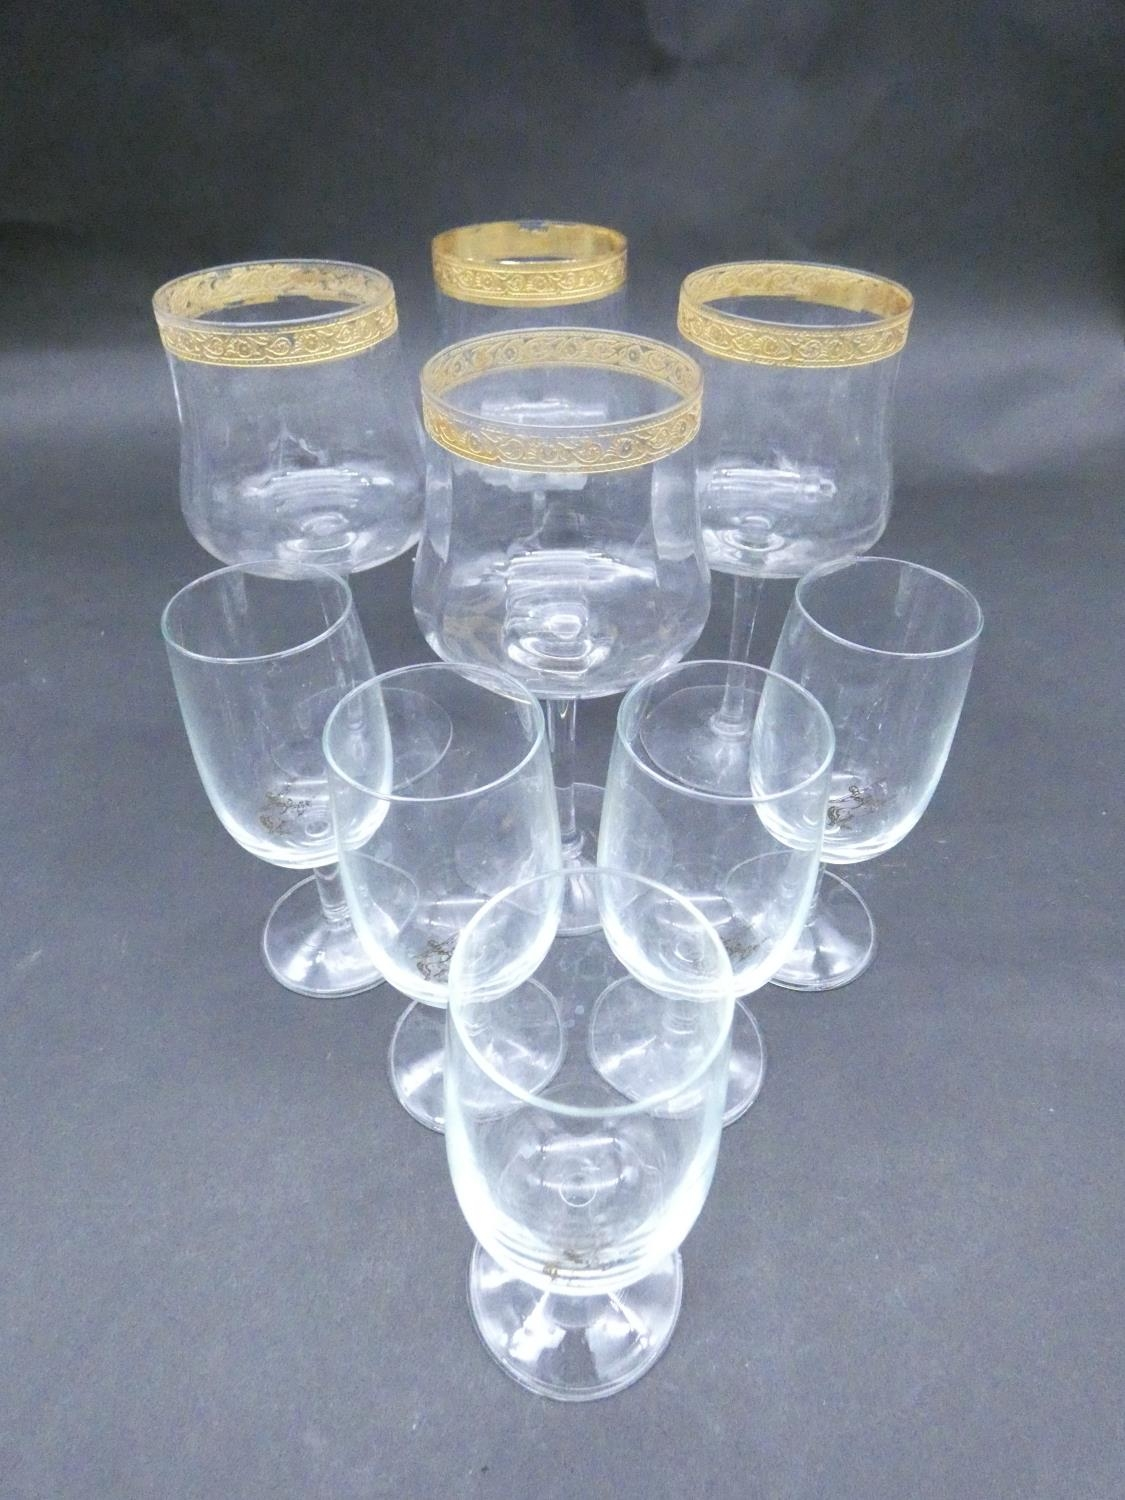 A collection of glasses. Including a set of five sherry glasses with gilded Orion symbols, along - Image 2 of 14